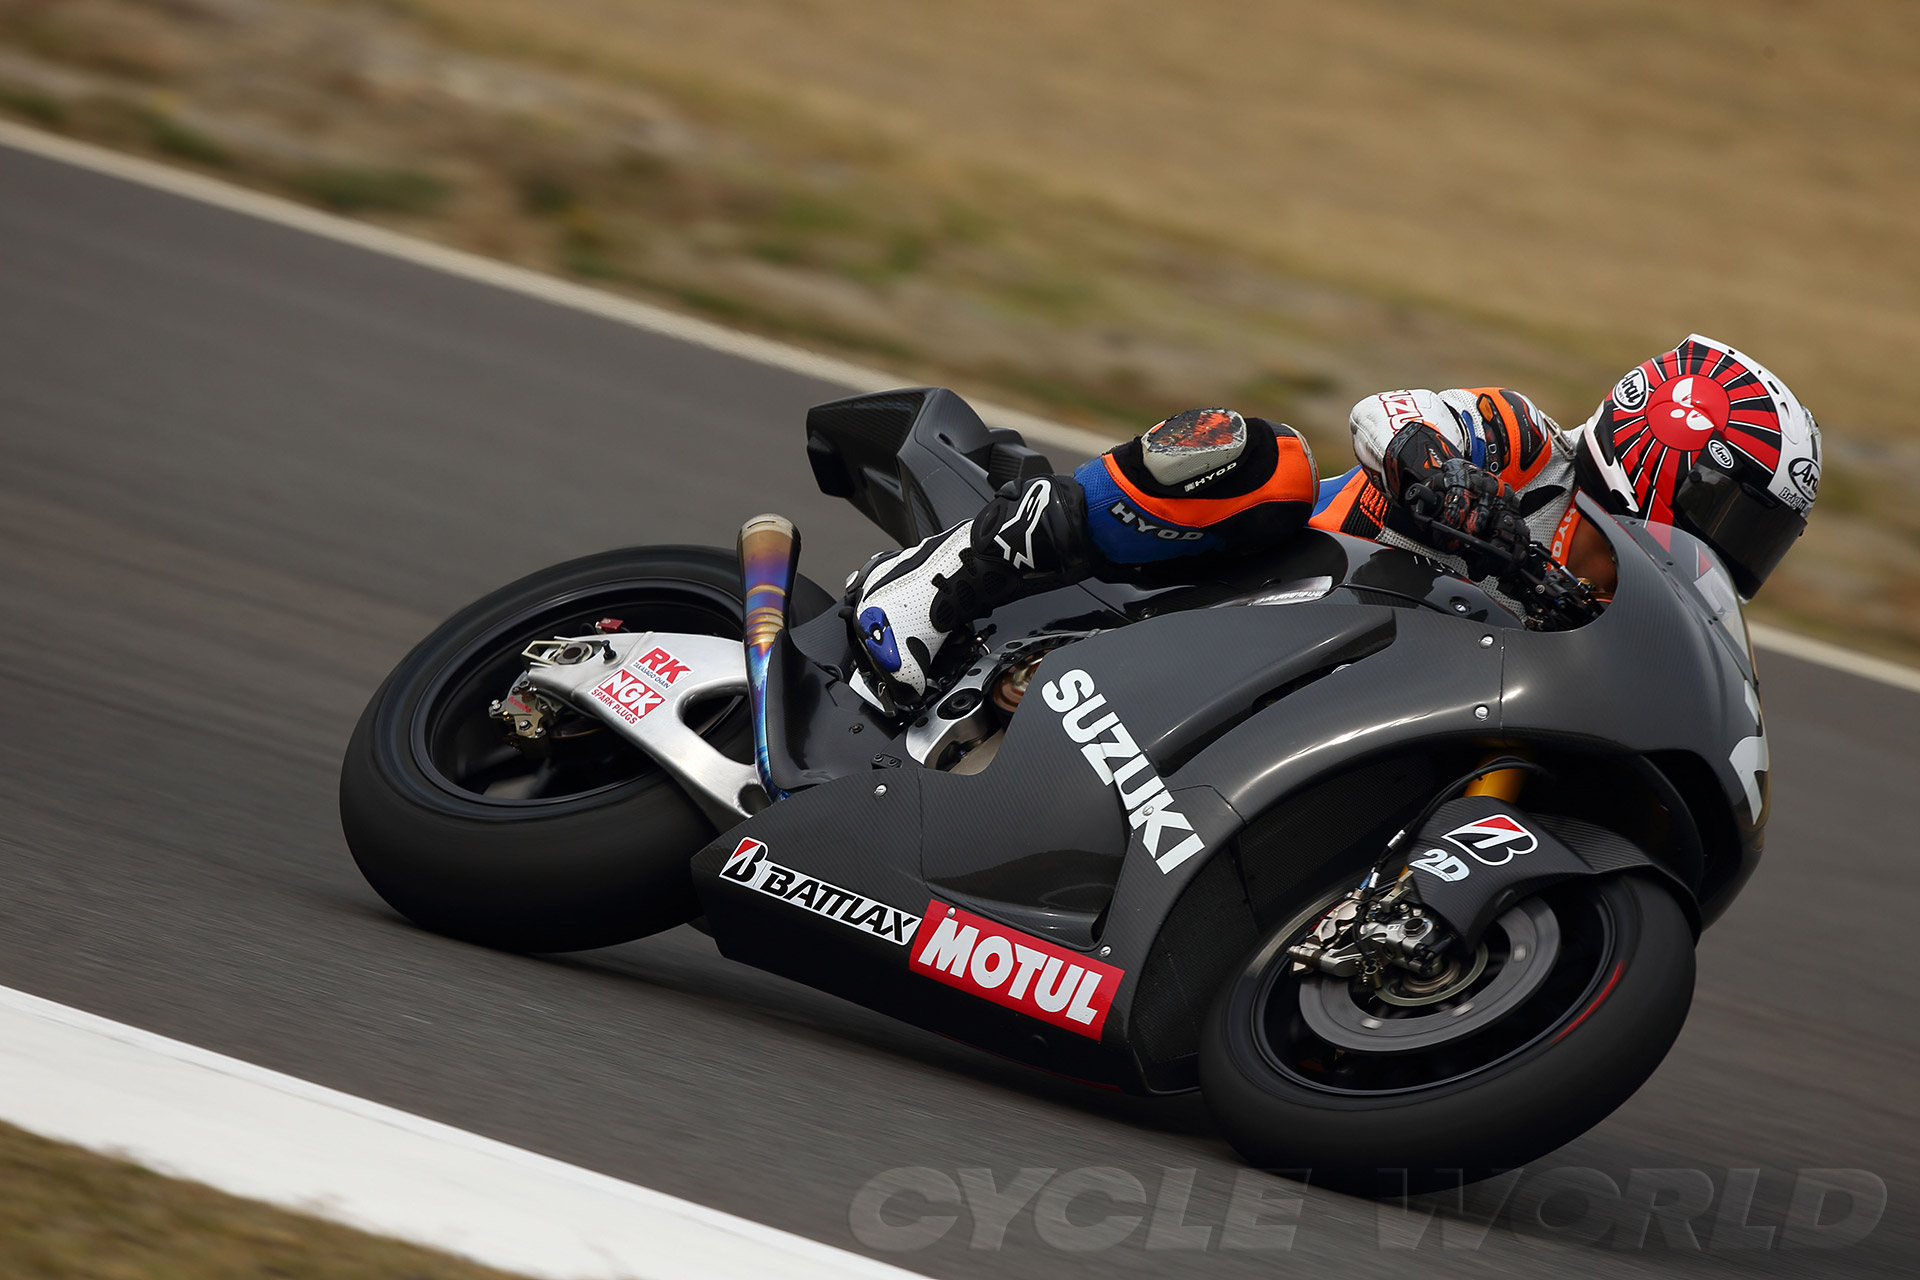 Auto and Cycle 2014 SUZUKI MOTOGP PROTOTYPES SPIED AGAIN!  Article by Kevin Cameron posted May 1, 2013